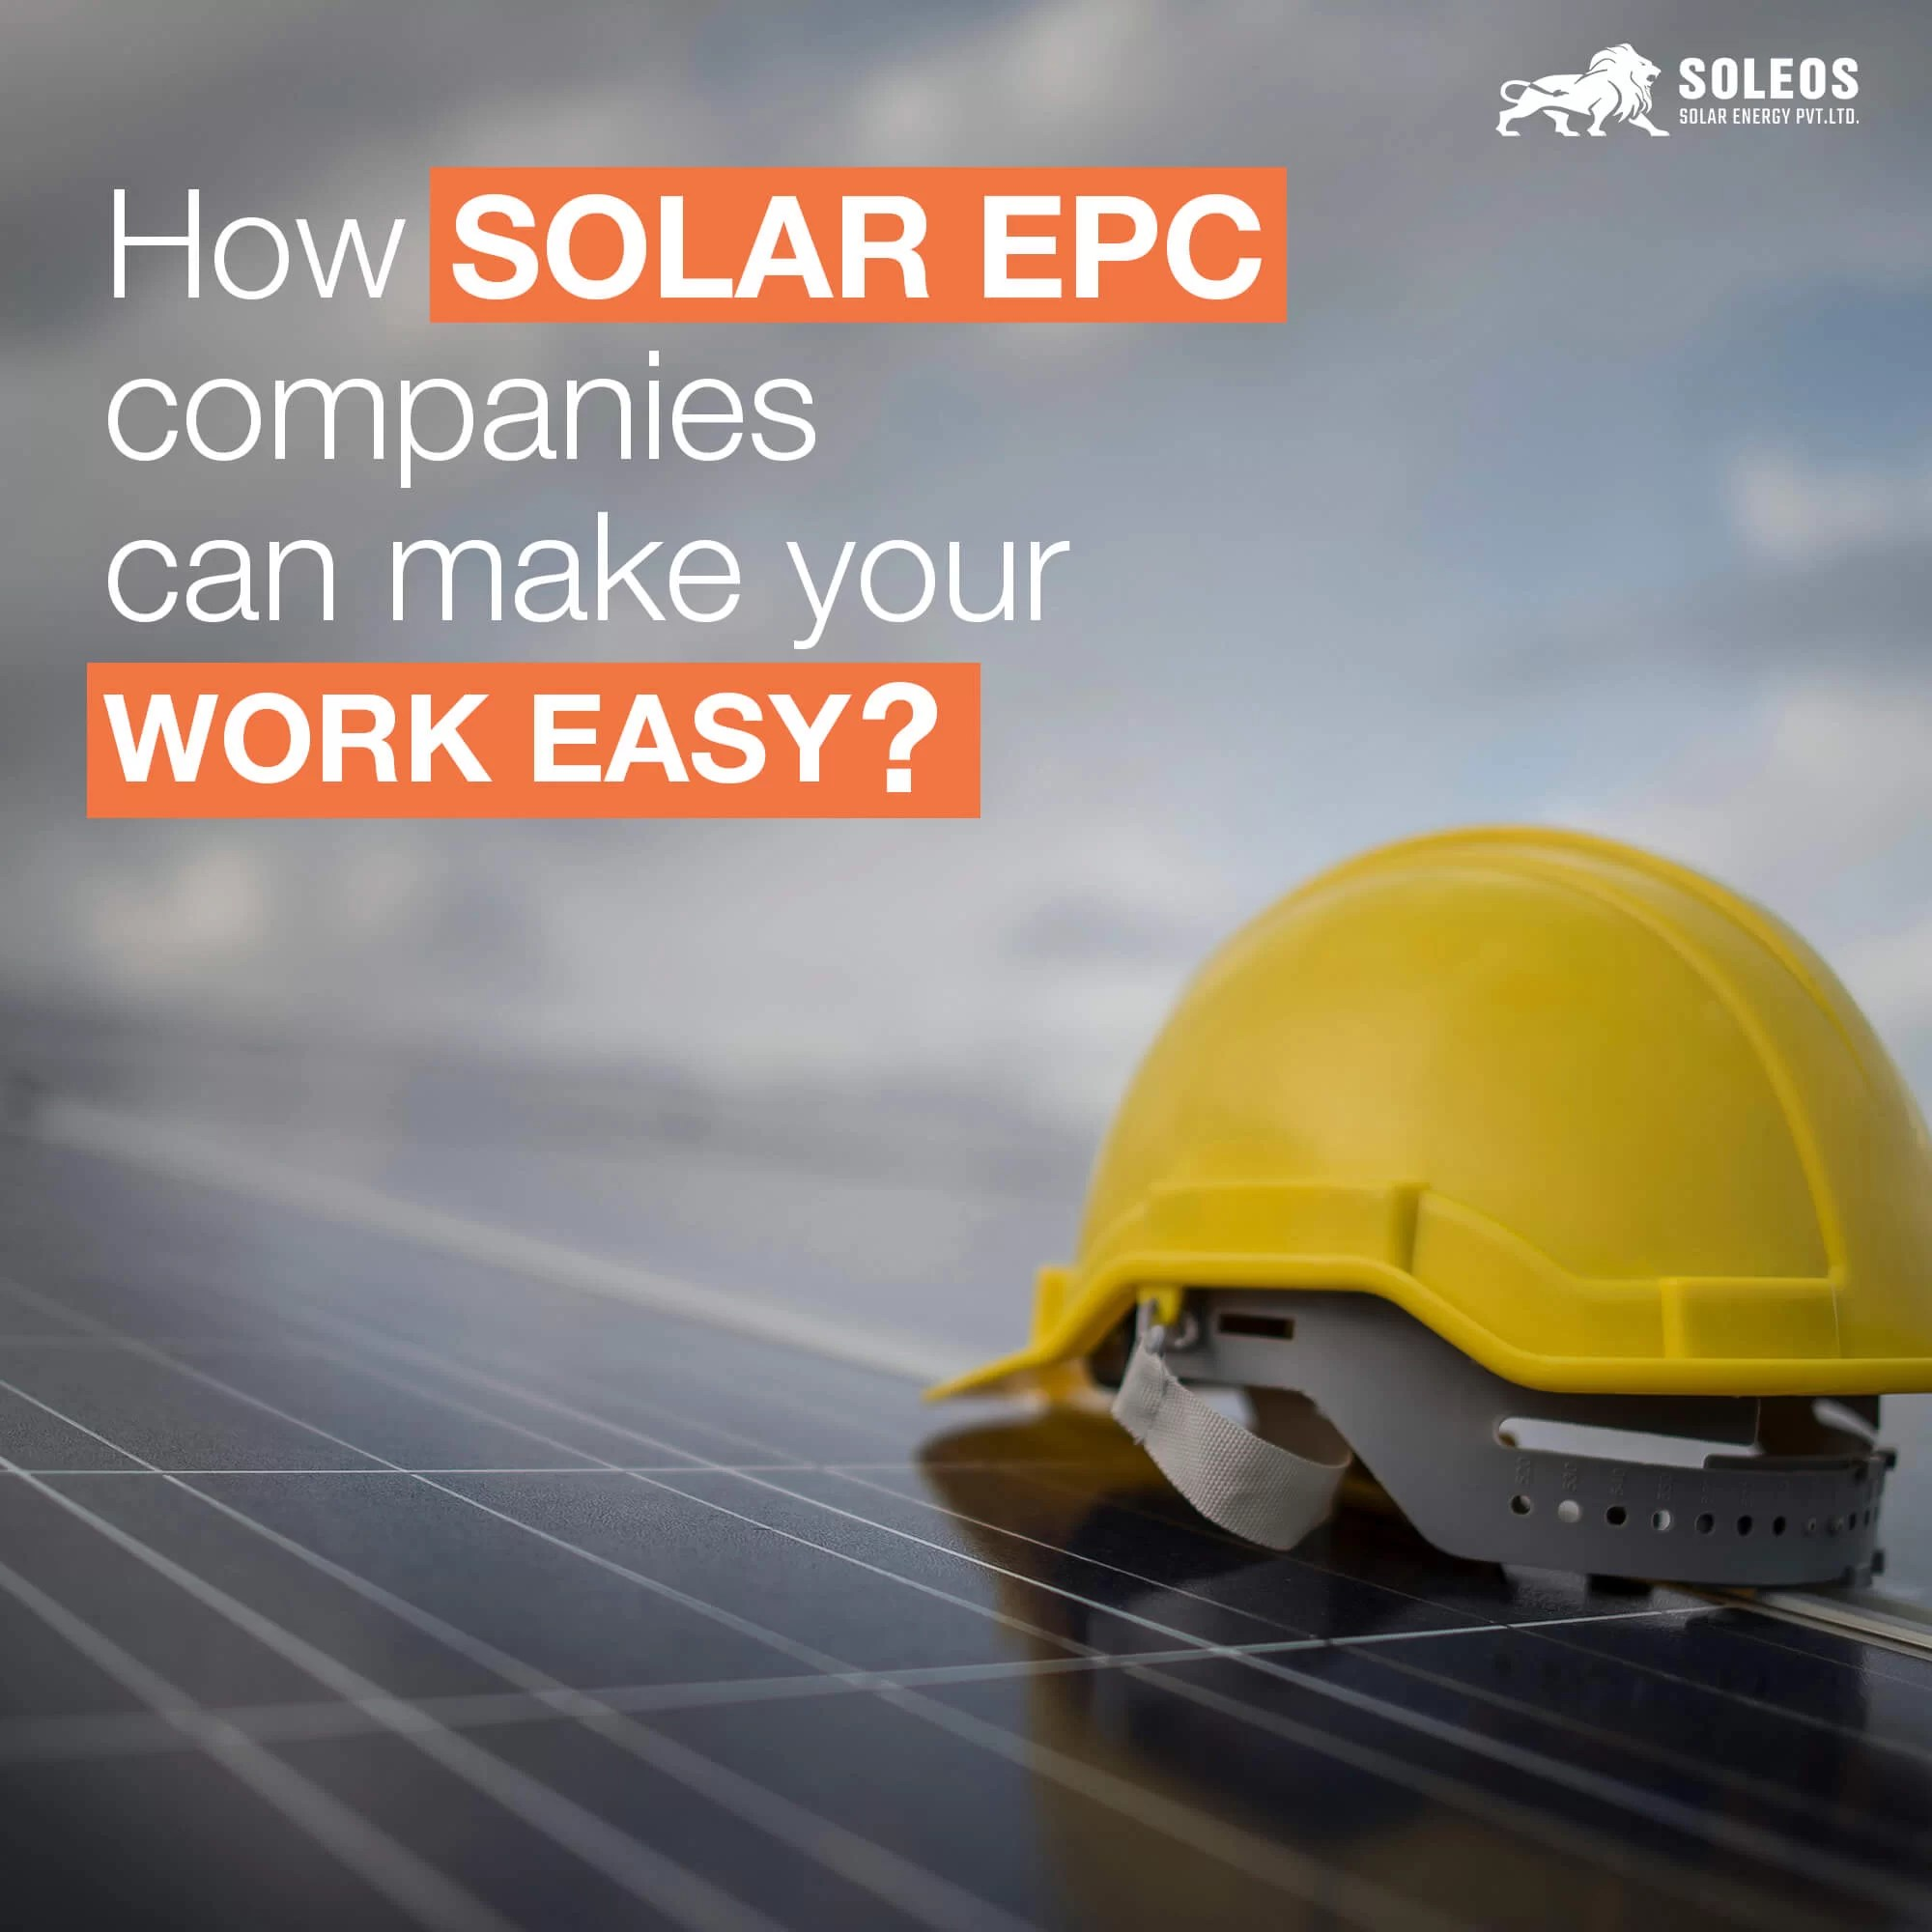 How Solar EPC companies can make your work easy